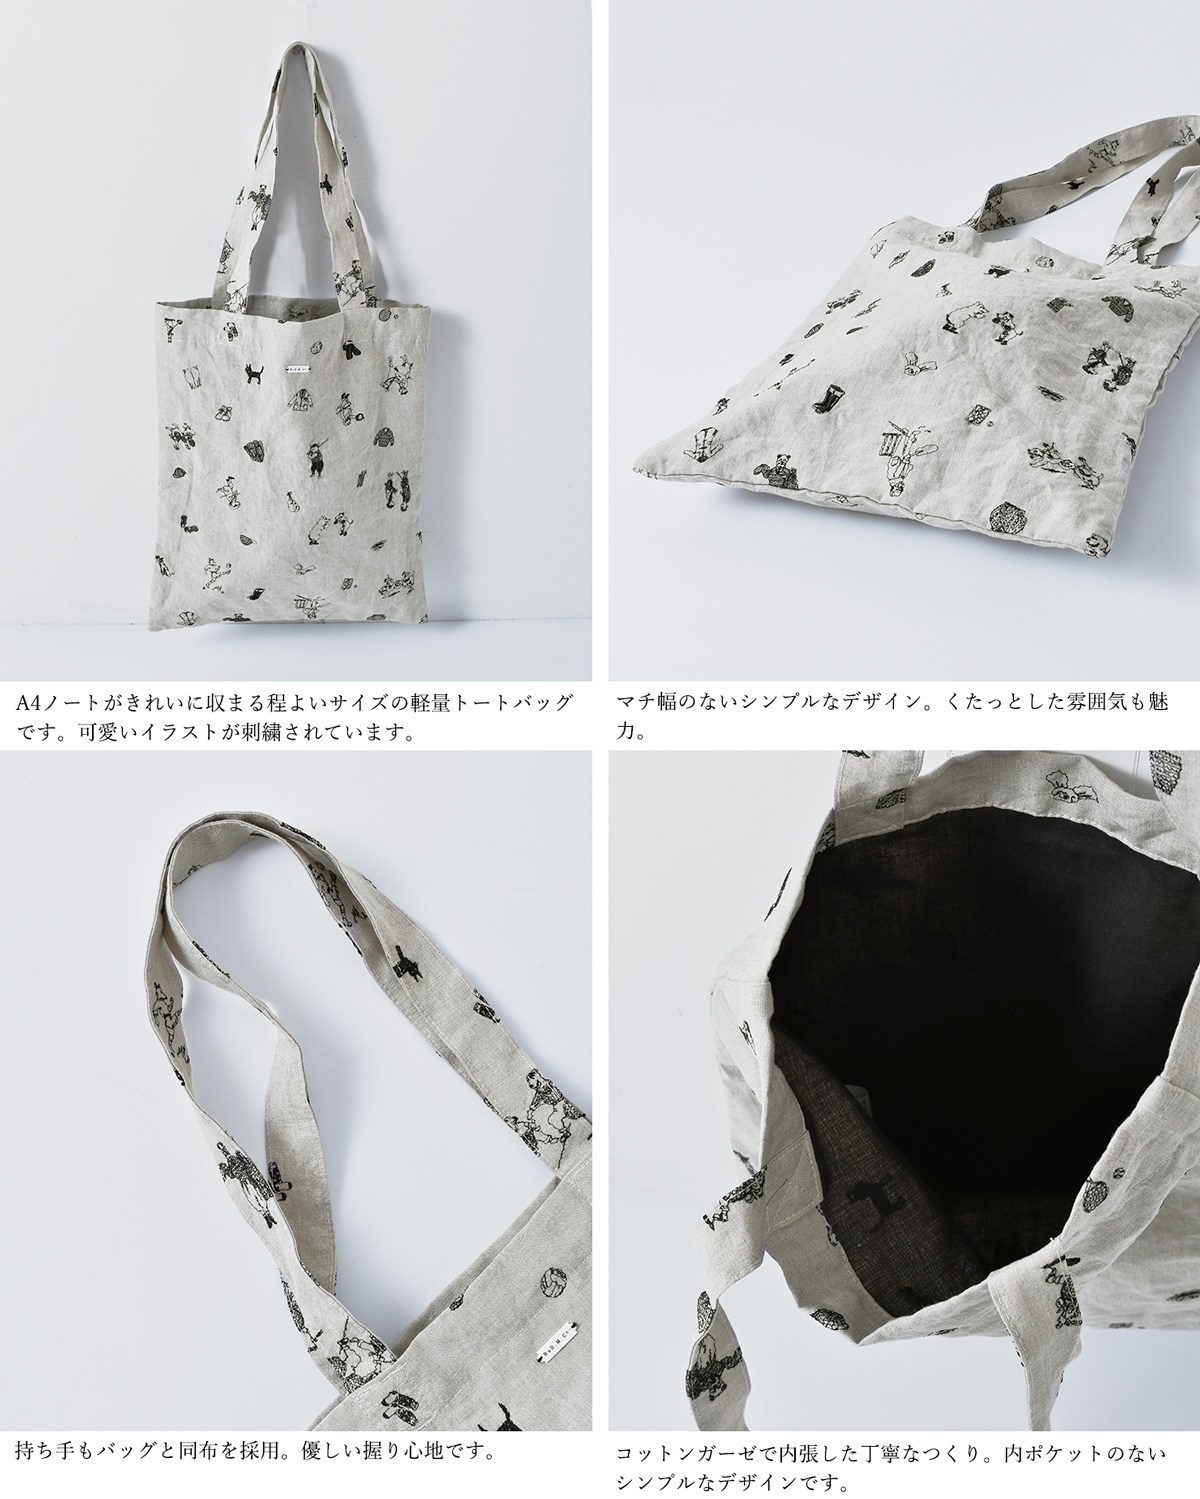 """R & D.M.Co-(オールドマンズテーラー)リネン刺繍トートバッグ""""B.S EMBROIDERY LINEN TOTE BAG"""" 4564"""